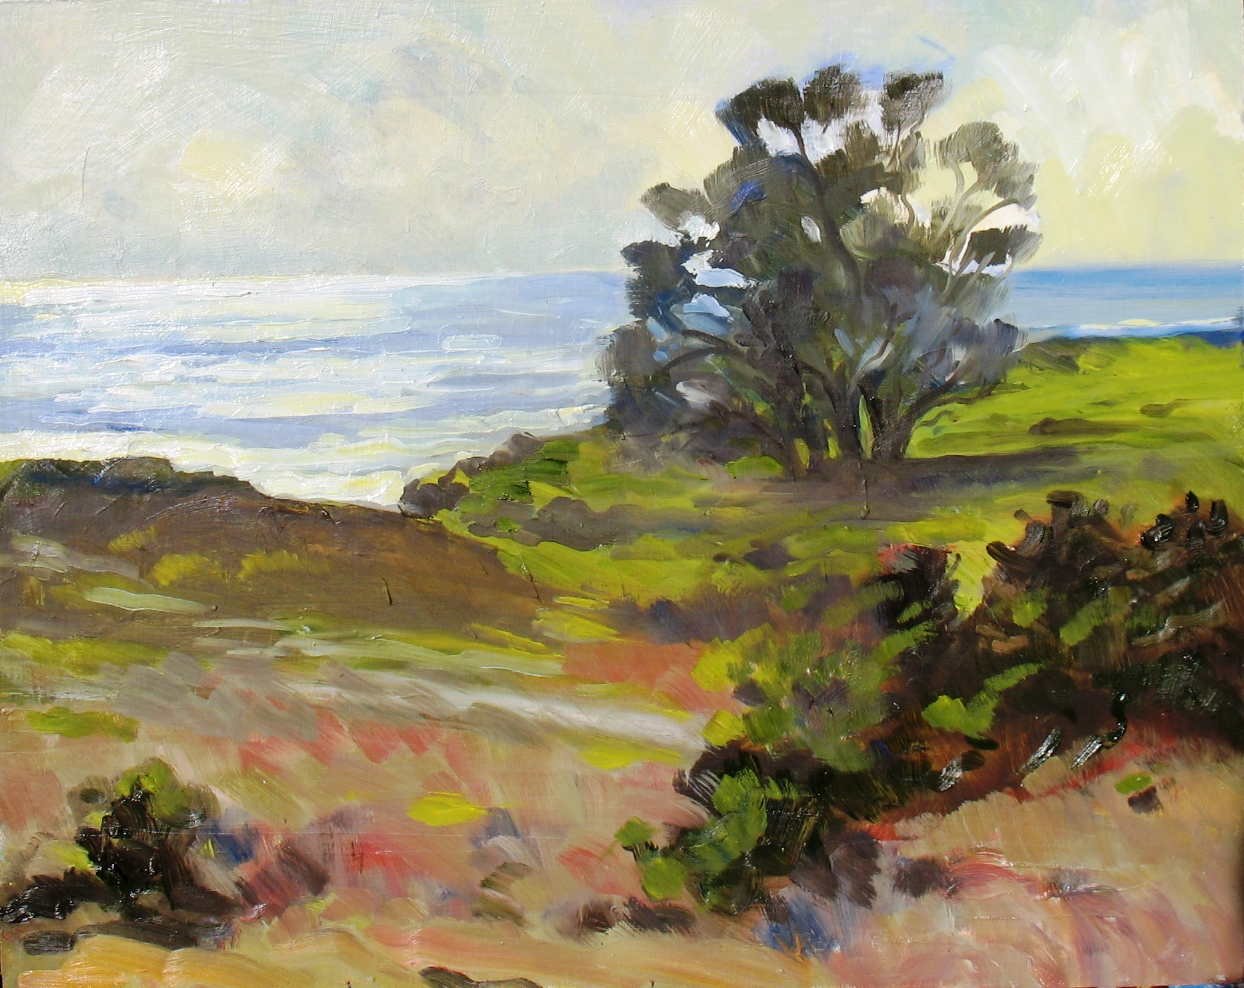 Light on the Water North Above Cayucos, 16 x 20 inches, oil on panel, 2013 - UNAVAILABLE